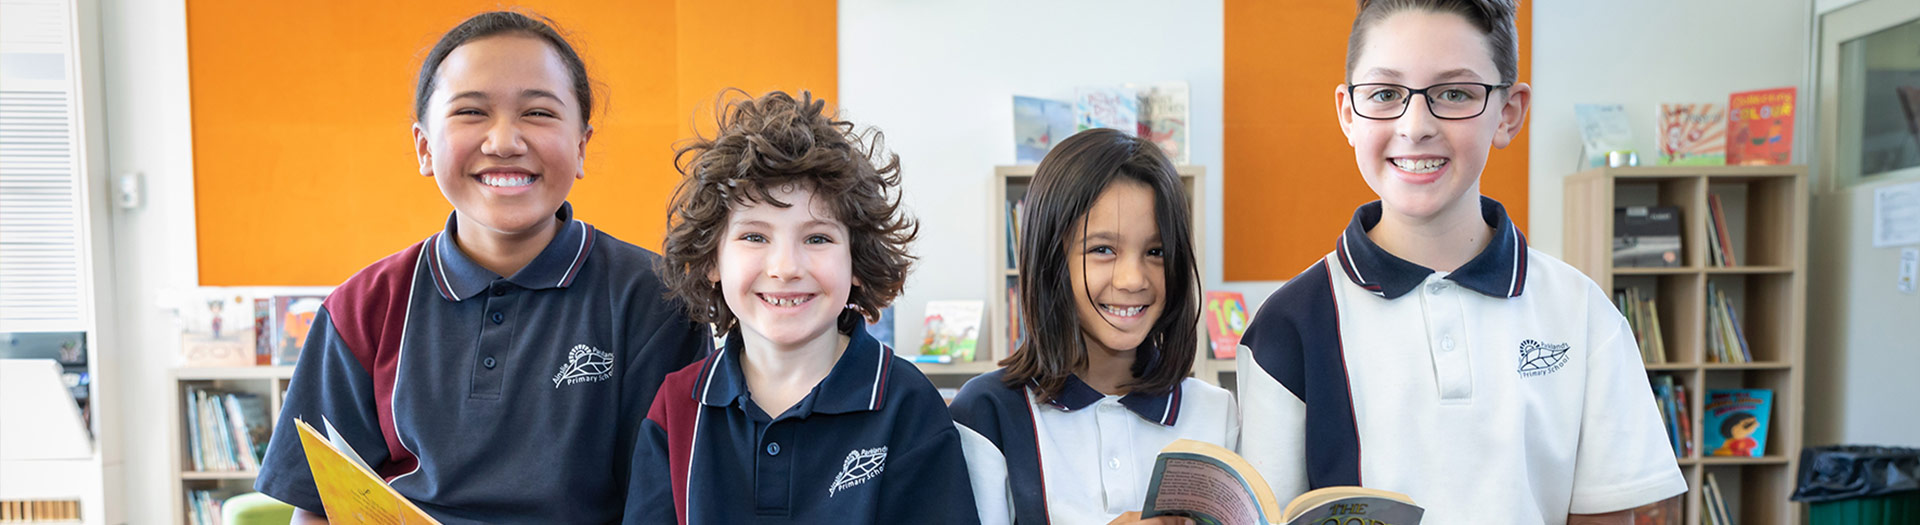 smiling students in a school library